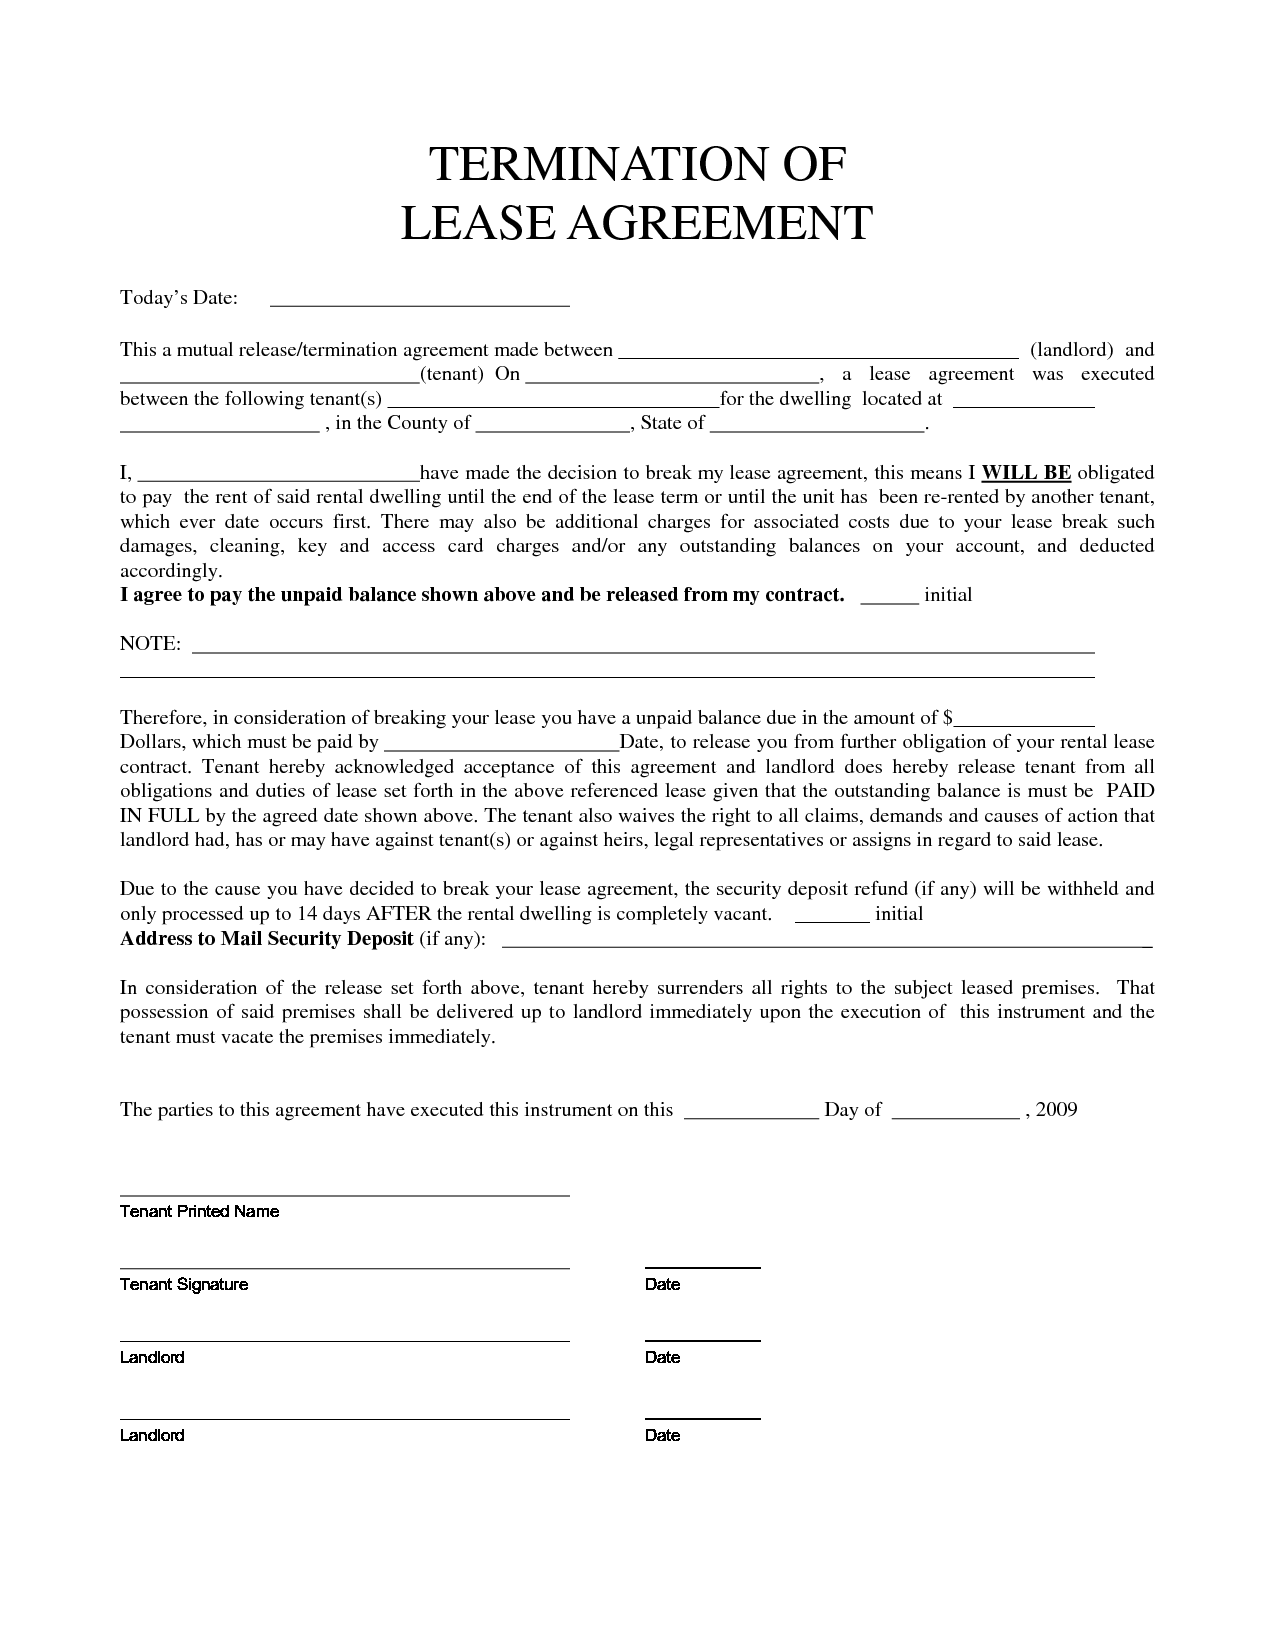 Personal property rental agreement forms property rentals direct personal property rental agreement forms property rentals direct termination of lease agreement form mitanshu Gallery